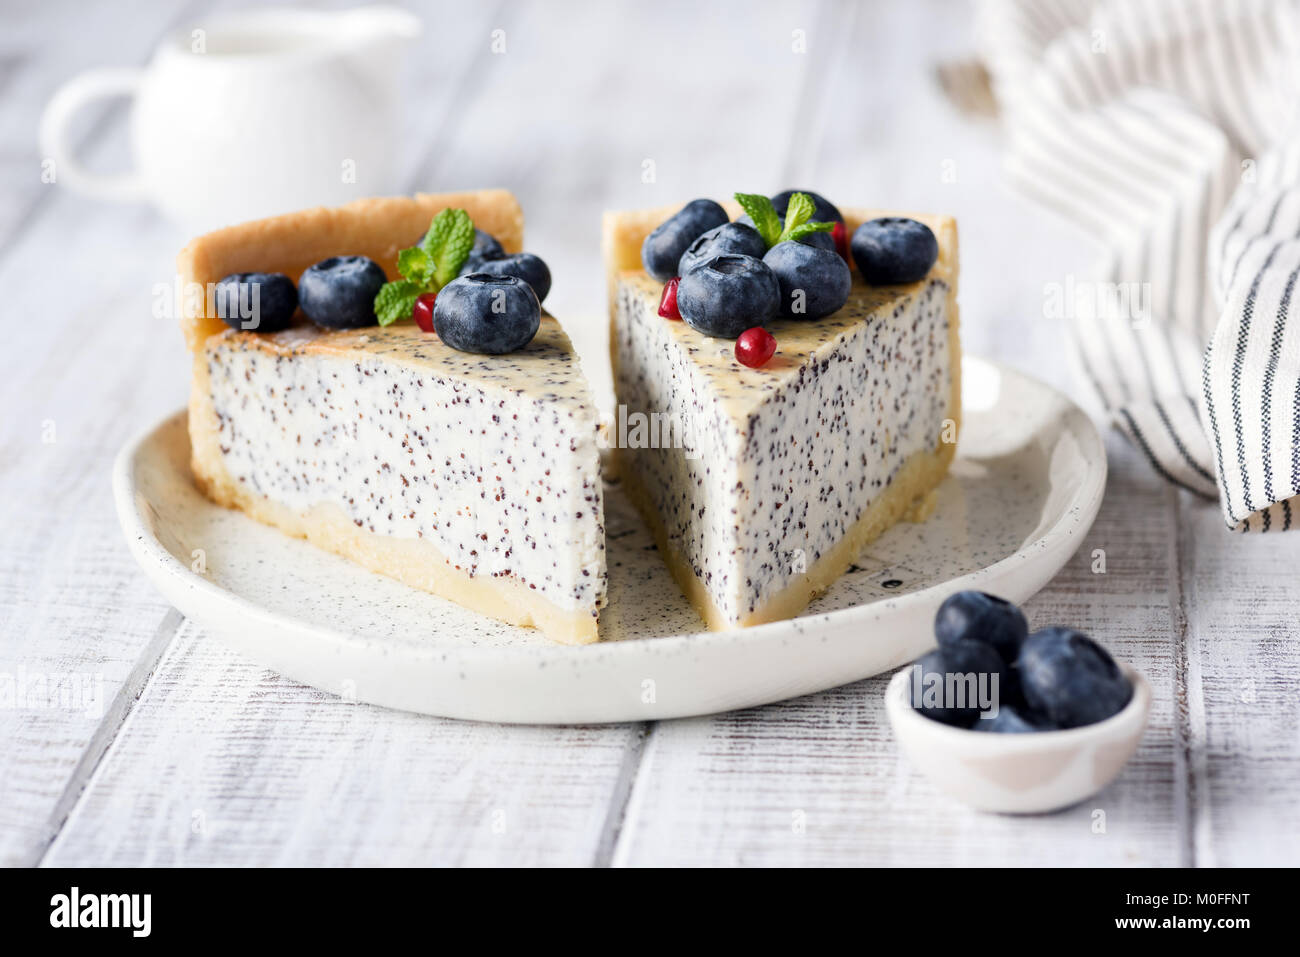 Cheesecake with poppy and blueberries. Homemade poppy pie on white plate decorated with blueberries and mint. Closeup - Stock Image